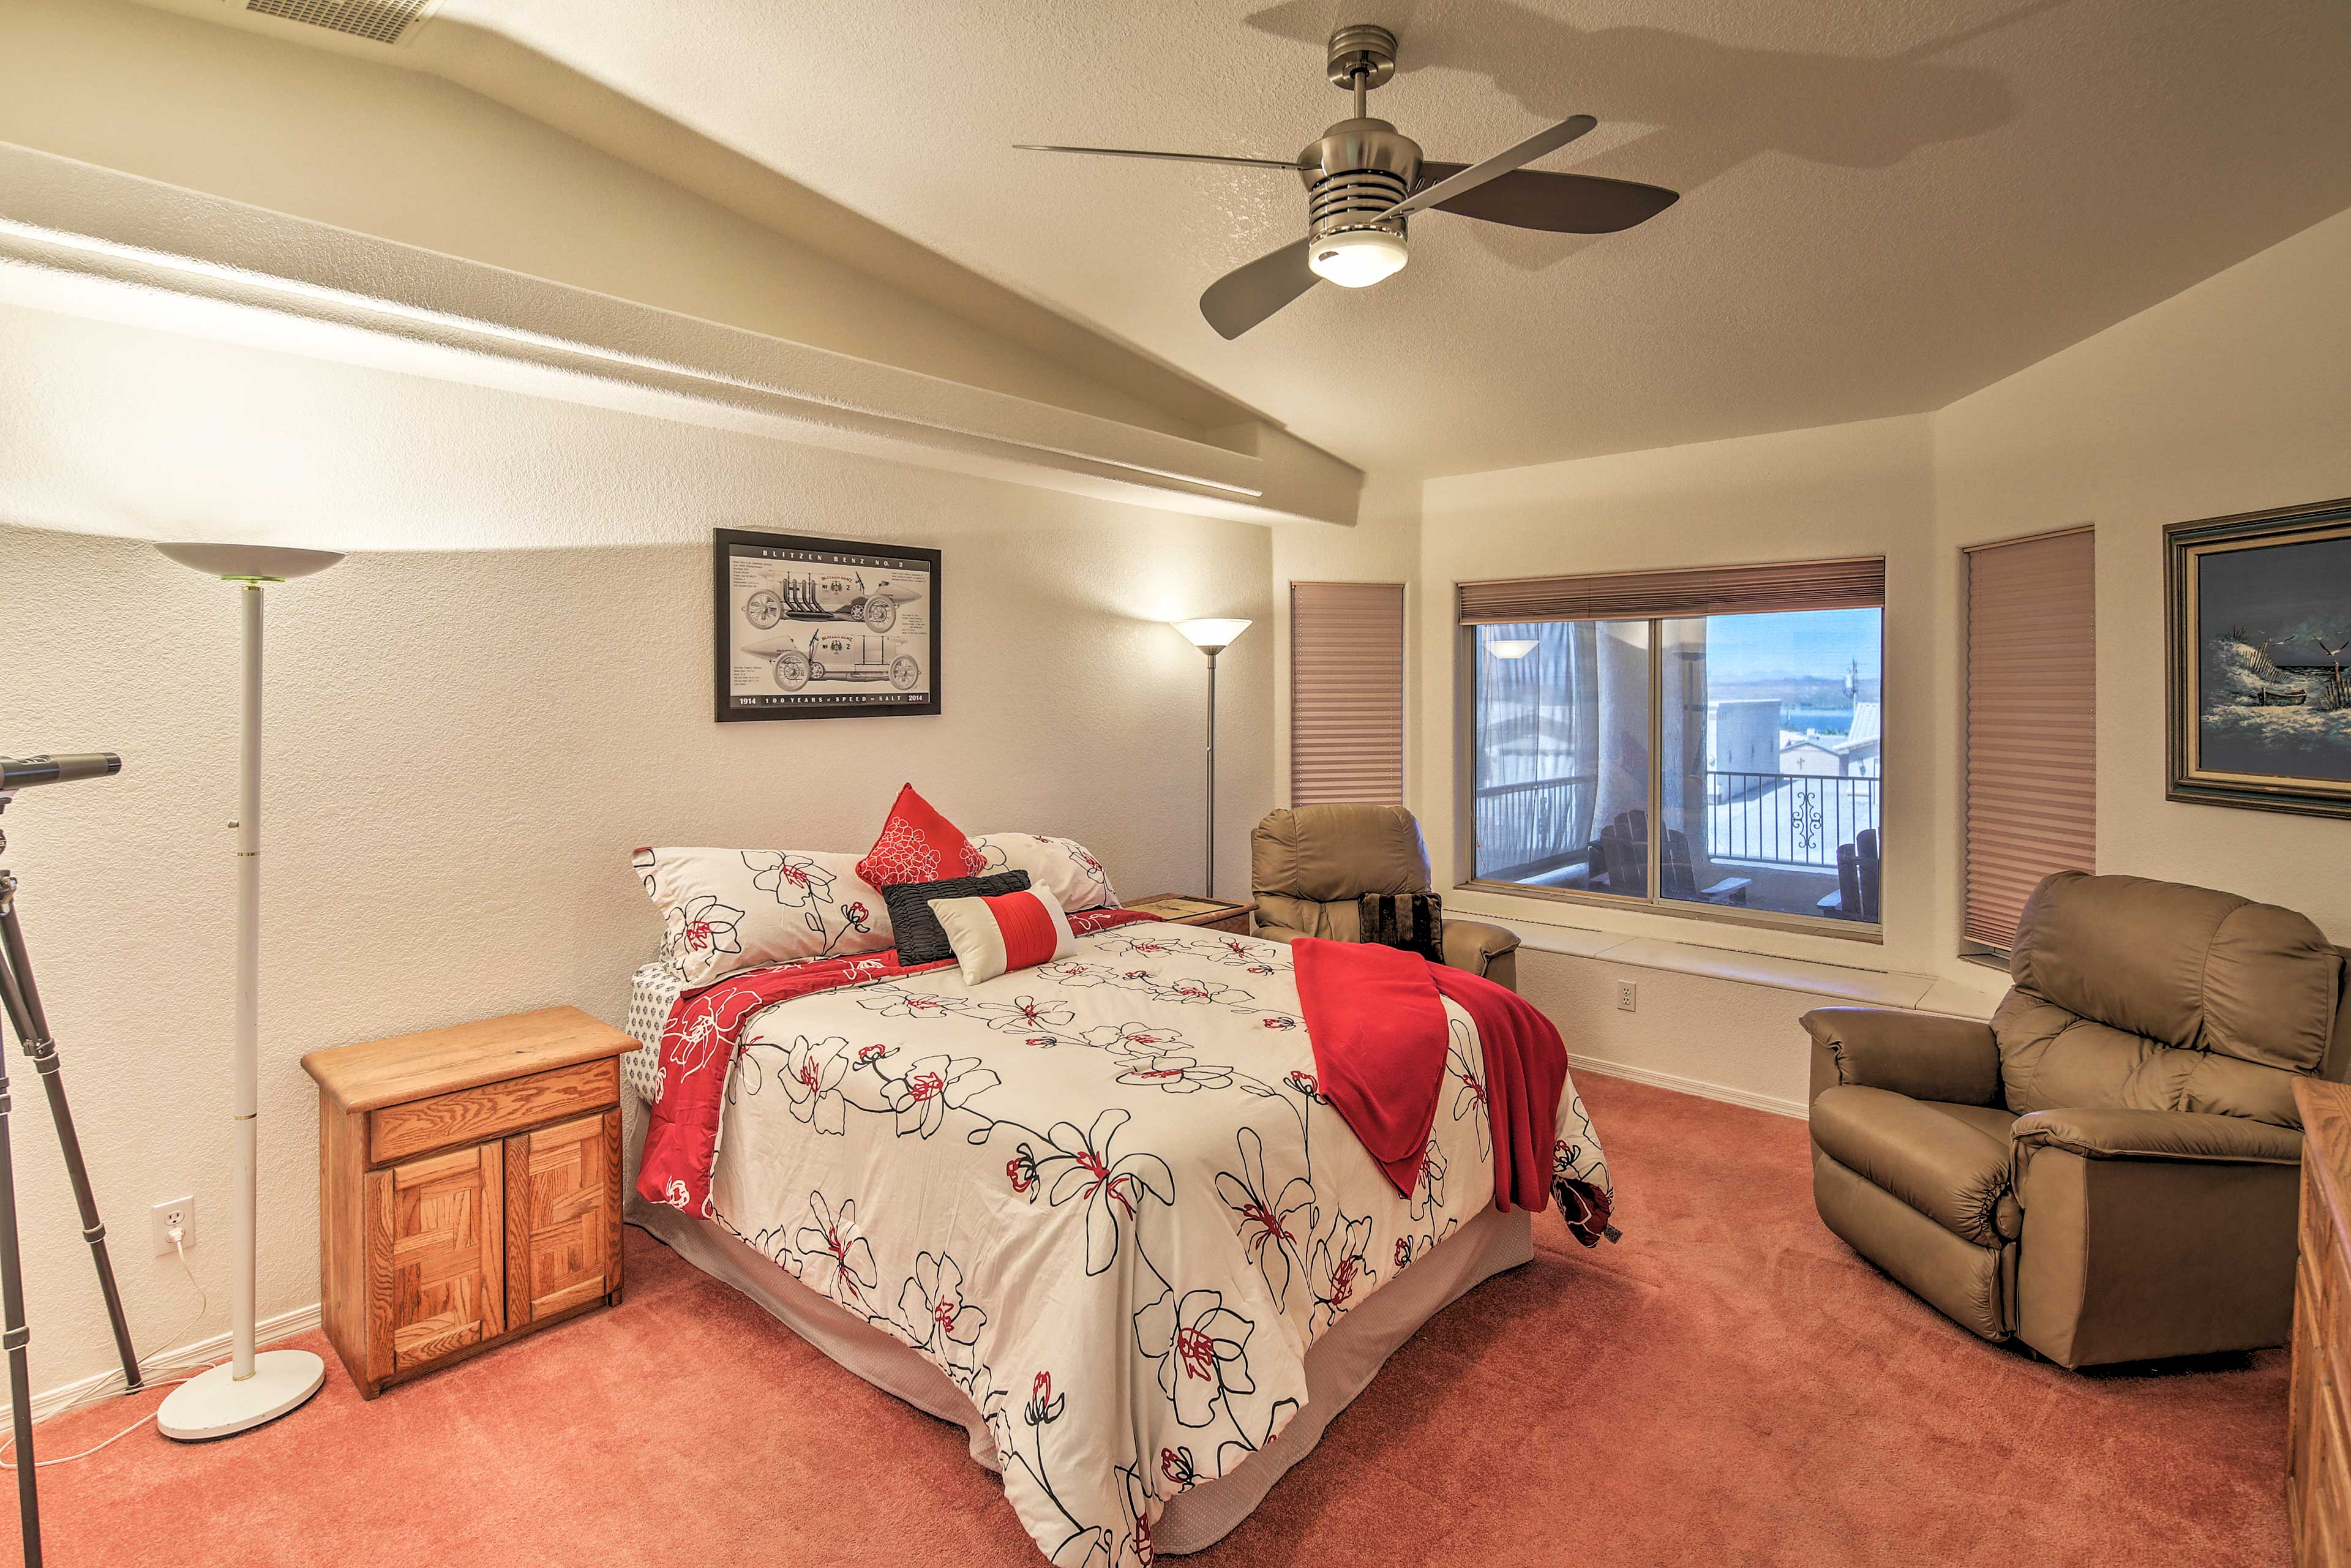 Choose from one of the 3 bedrooms to sleep in.